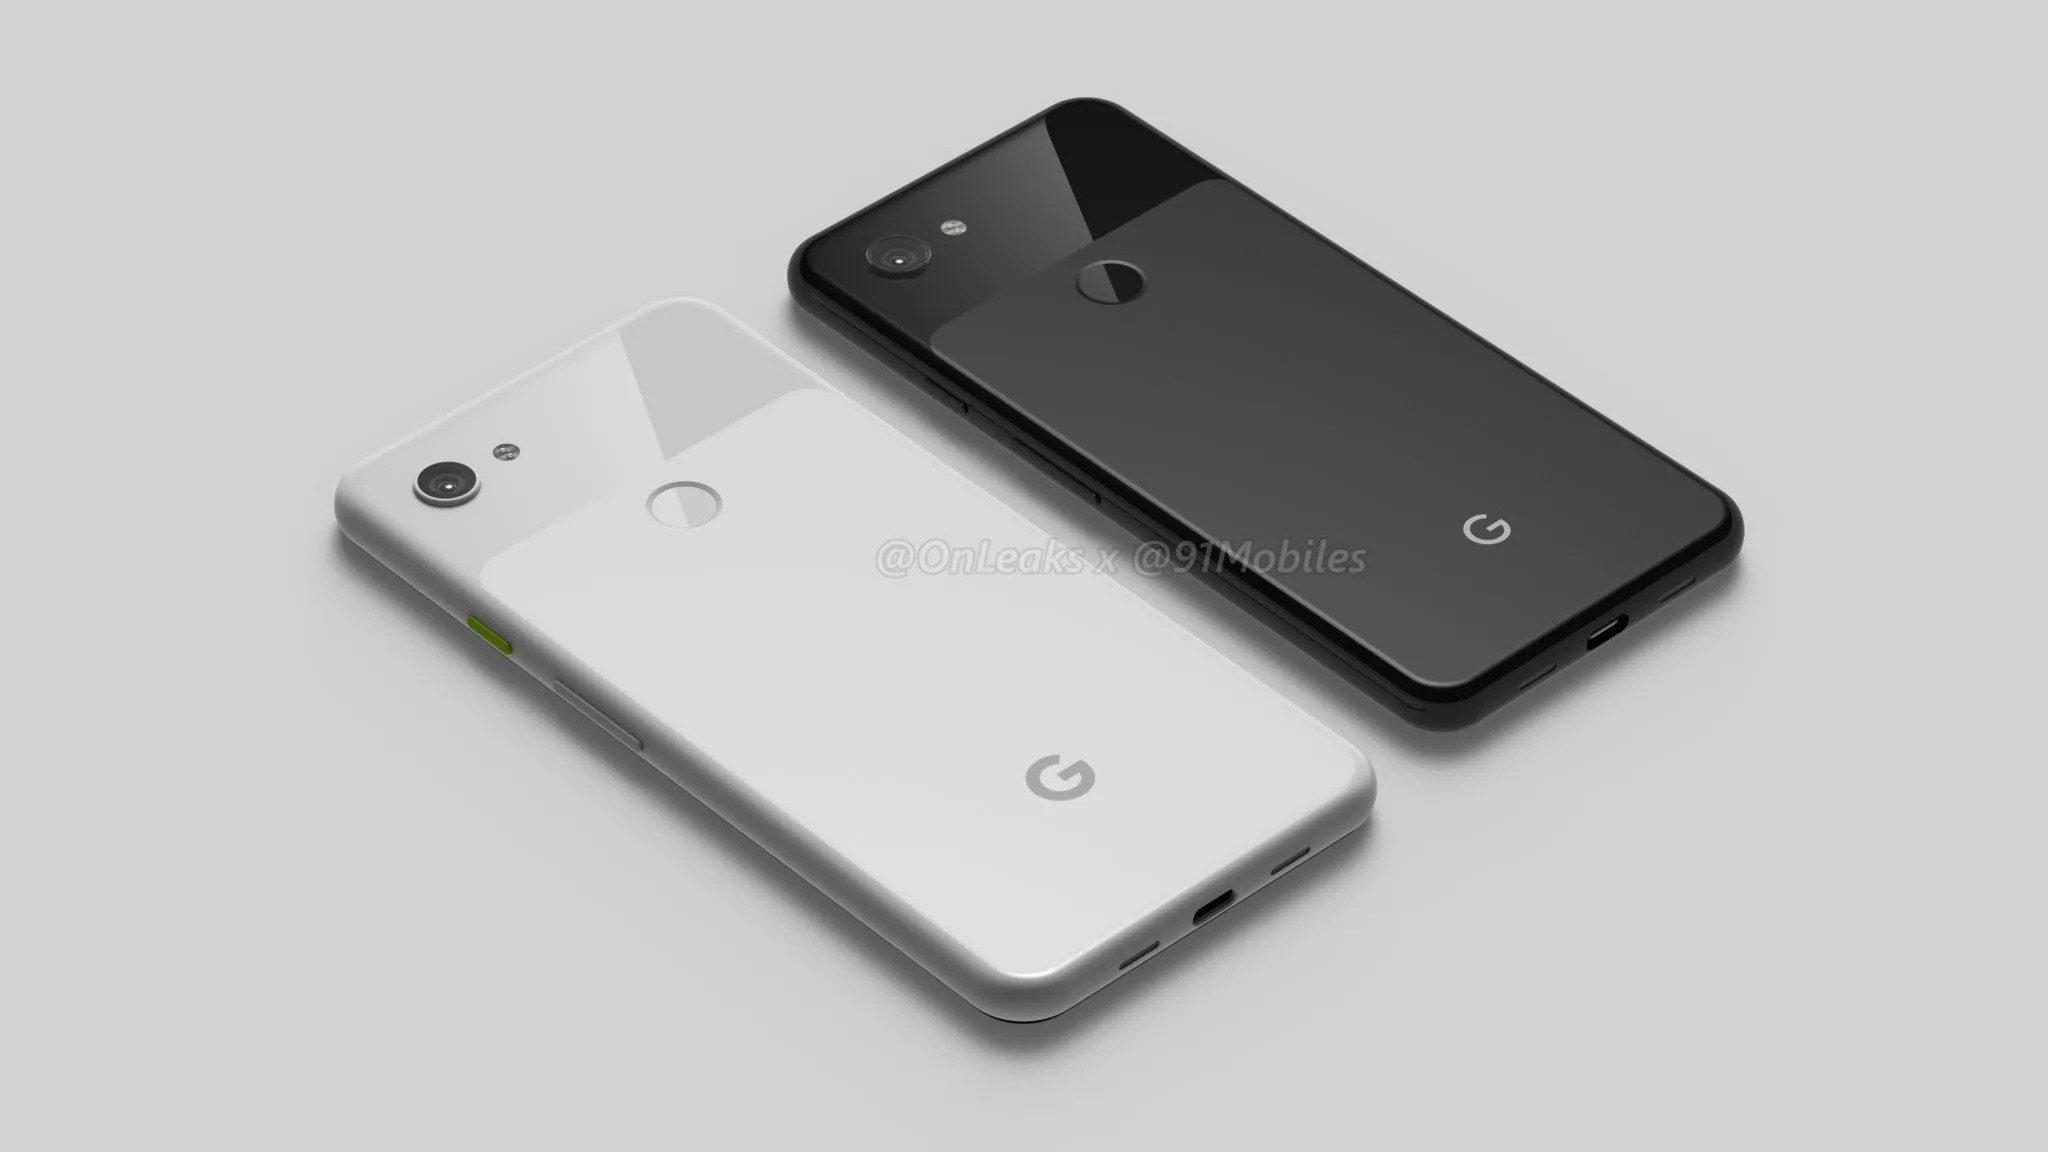 New details about Google Pixel 3a and Pixel 3a XL smartphones appeared